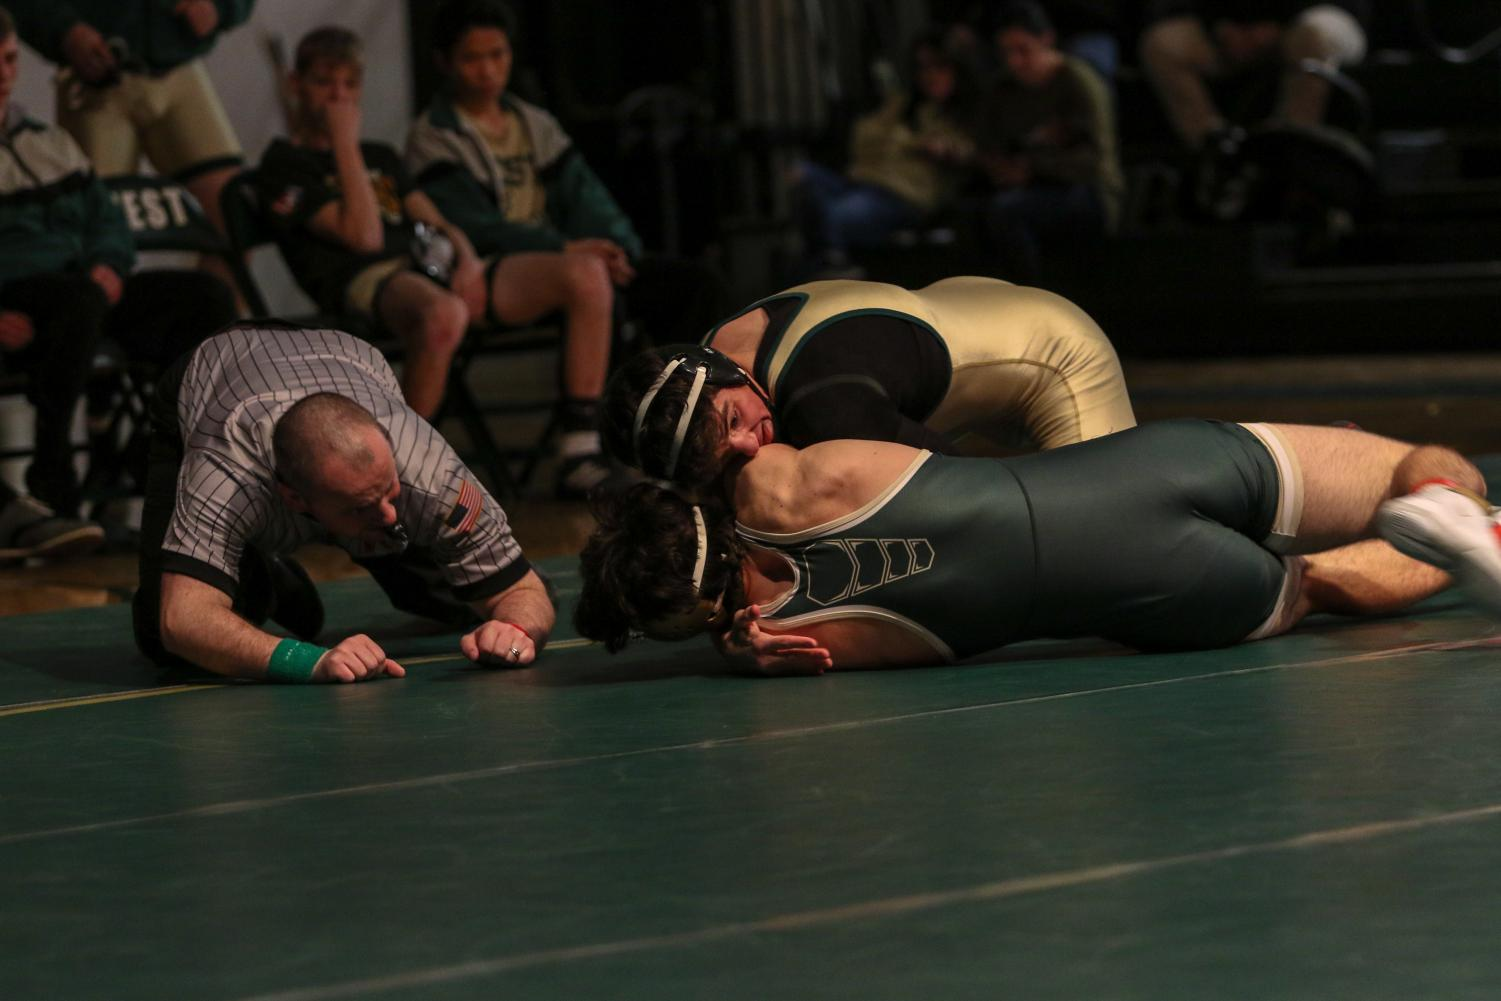 Ashton Barker '21 tries to turn his opponent during his match at 182 pounds. Barker pinned Hempstead's Andrew Hefel '20 in 1:08.